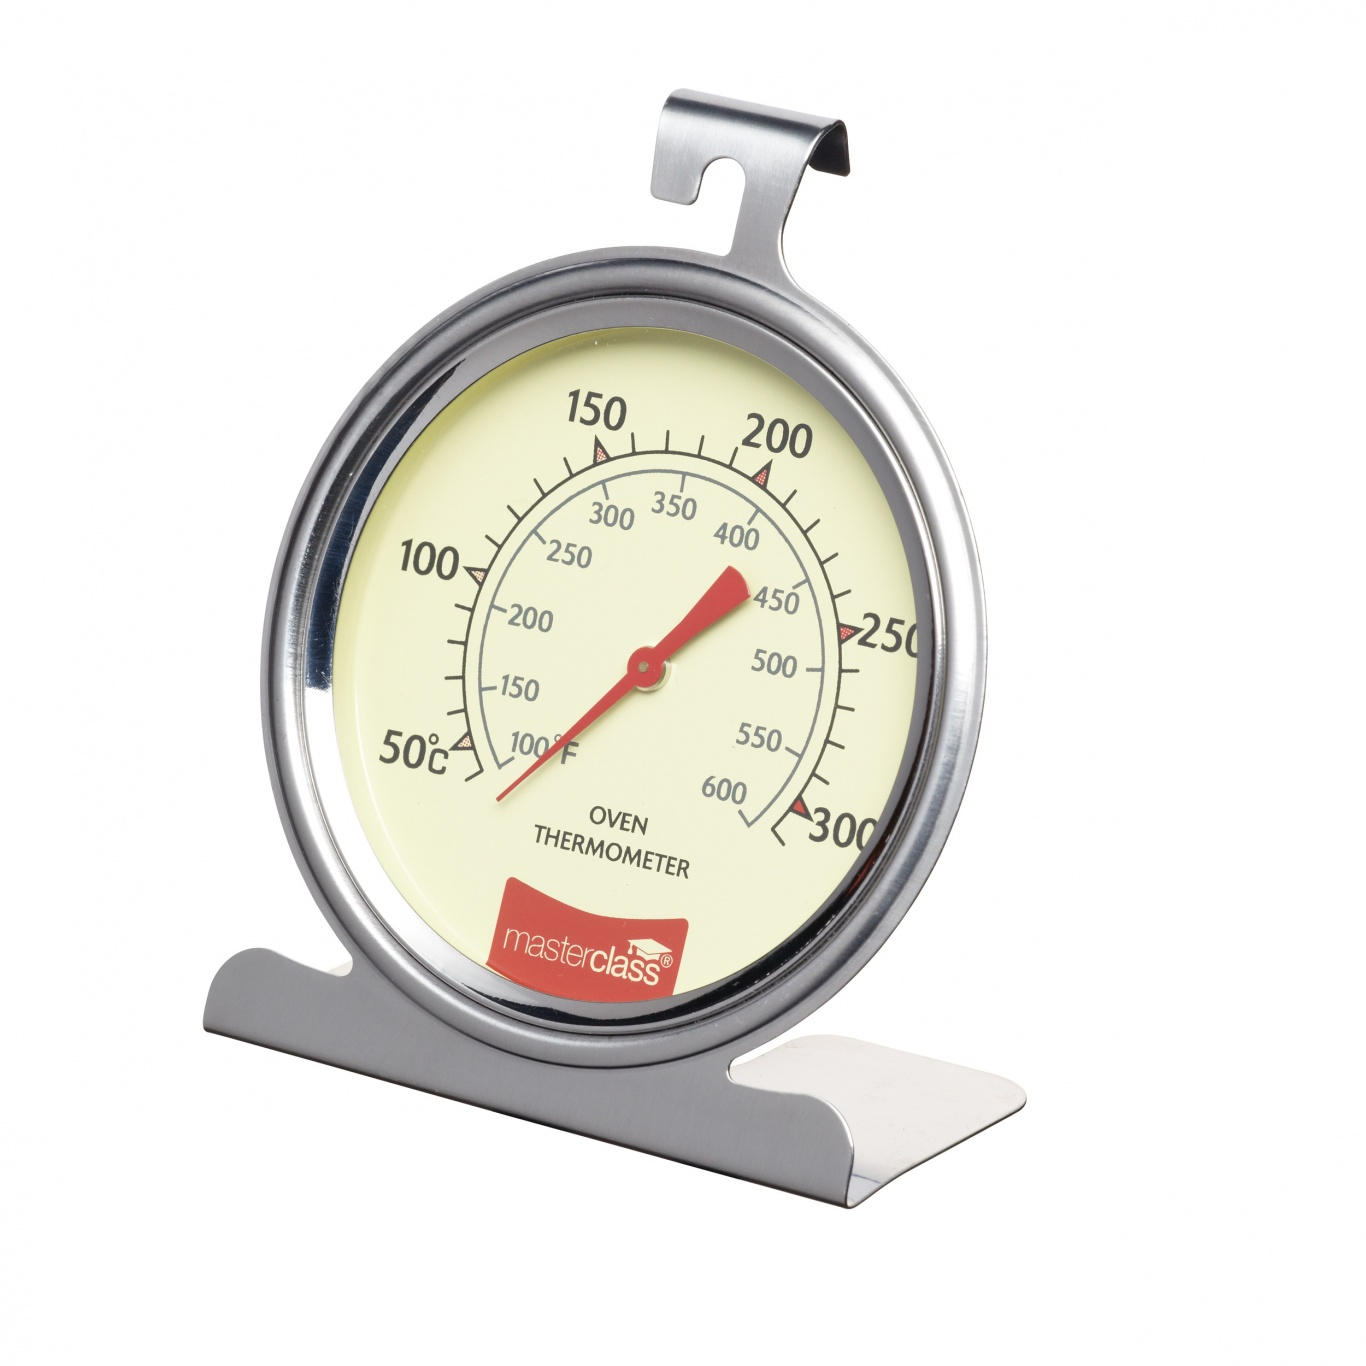 Image of Oven Thermometer